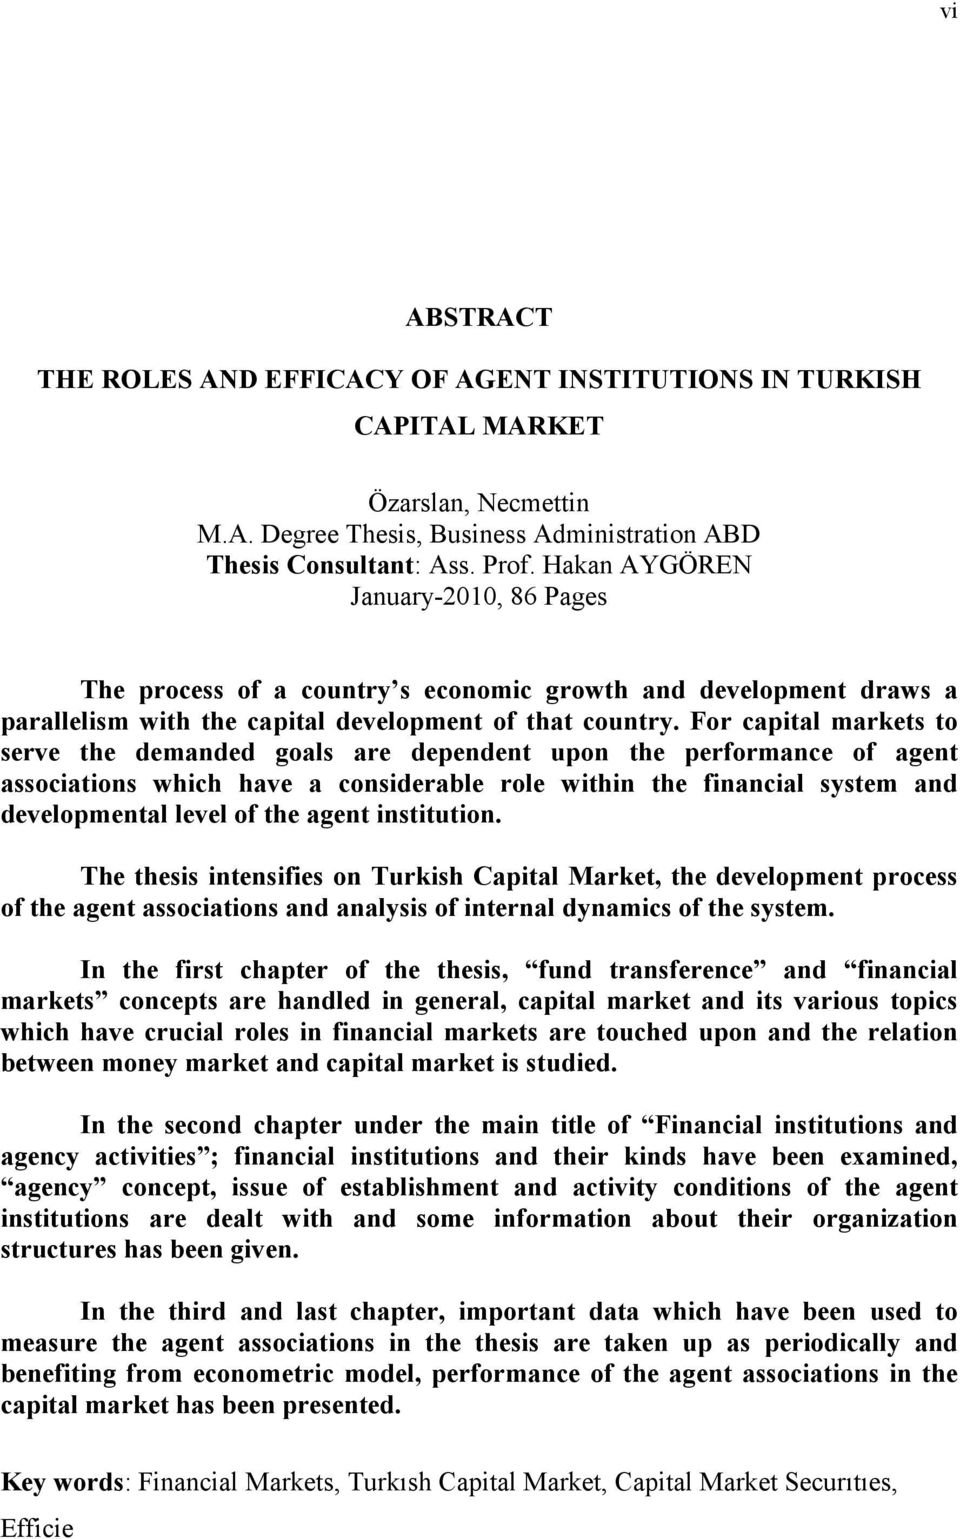 For capital markets to serve the demanded goals are dependent upon the performance of agent associations which have a considerable role within the financial system and developmental level of the